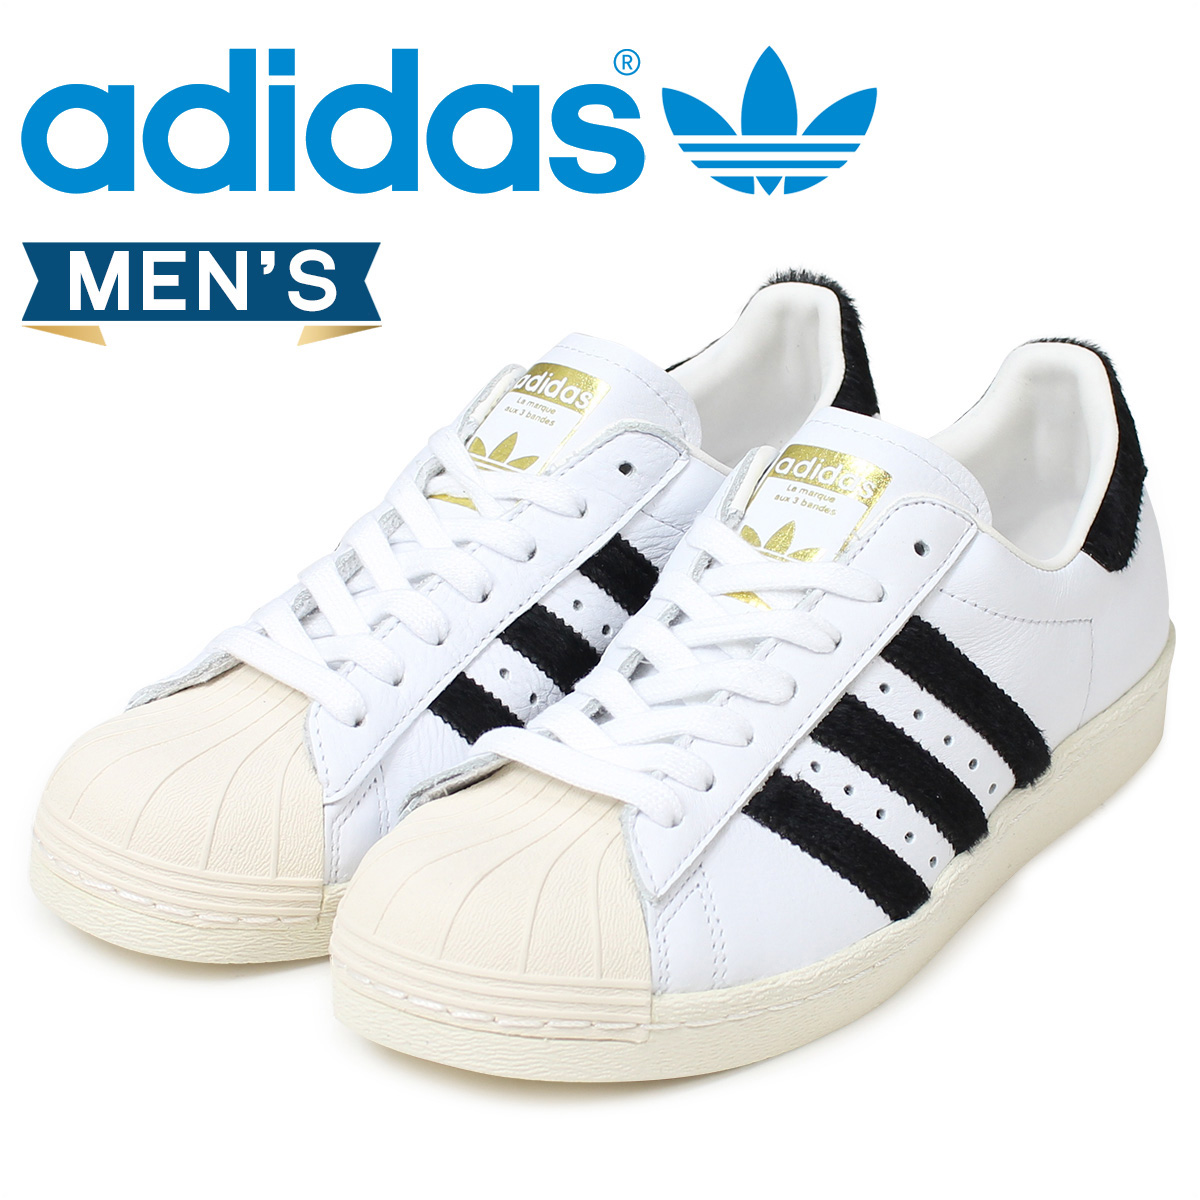 adidas superstar Lady's men sneakers Adidas Originals SUPERSTAR 80S BB2231 shoes white white originals